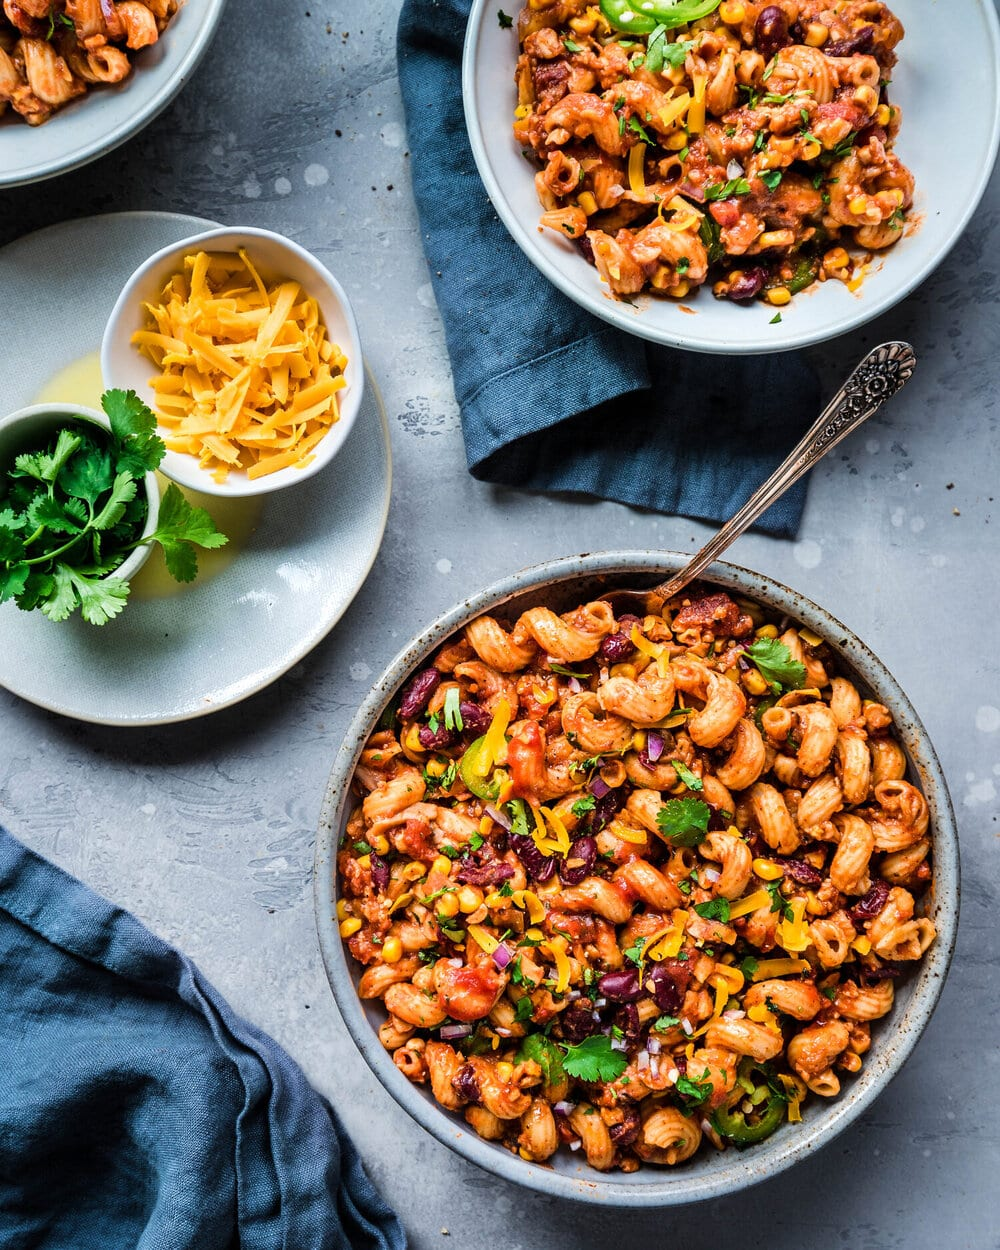 10 Easy Vegan Pasta recipes. one pot vegan chili mac.